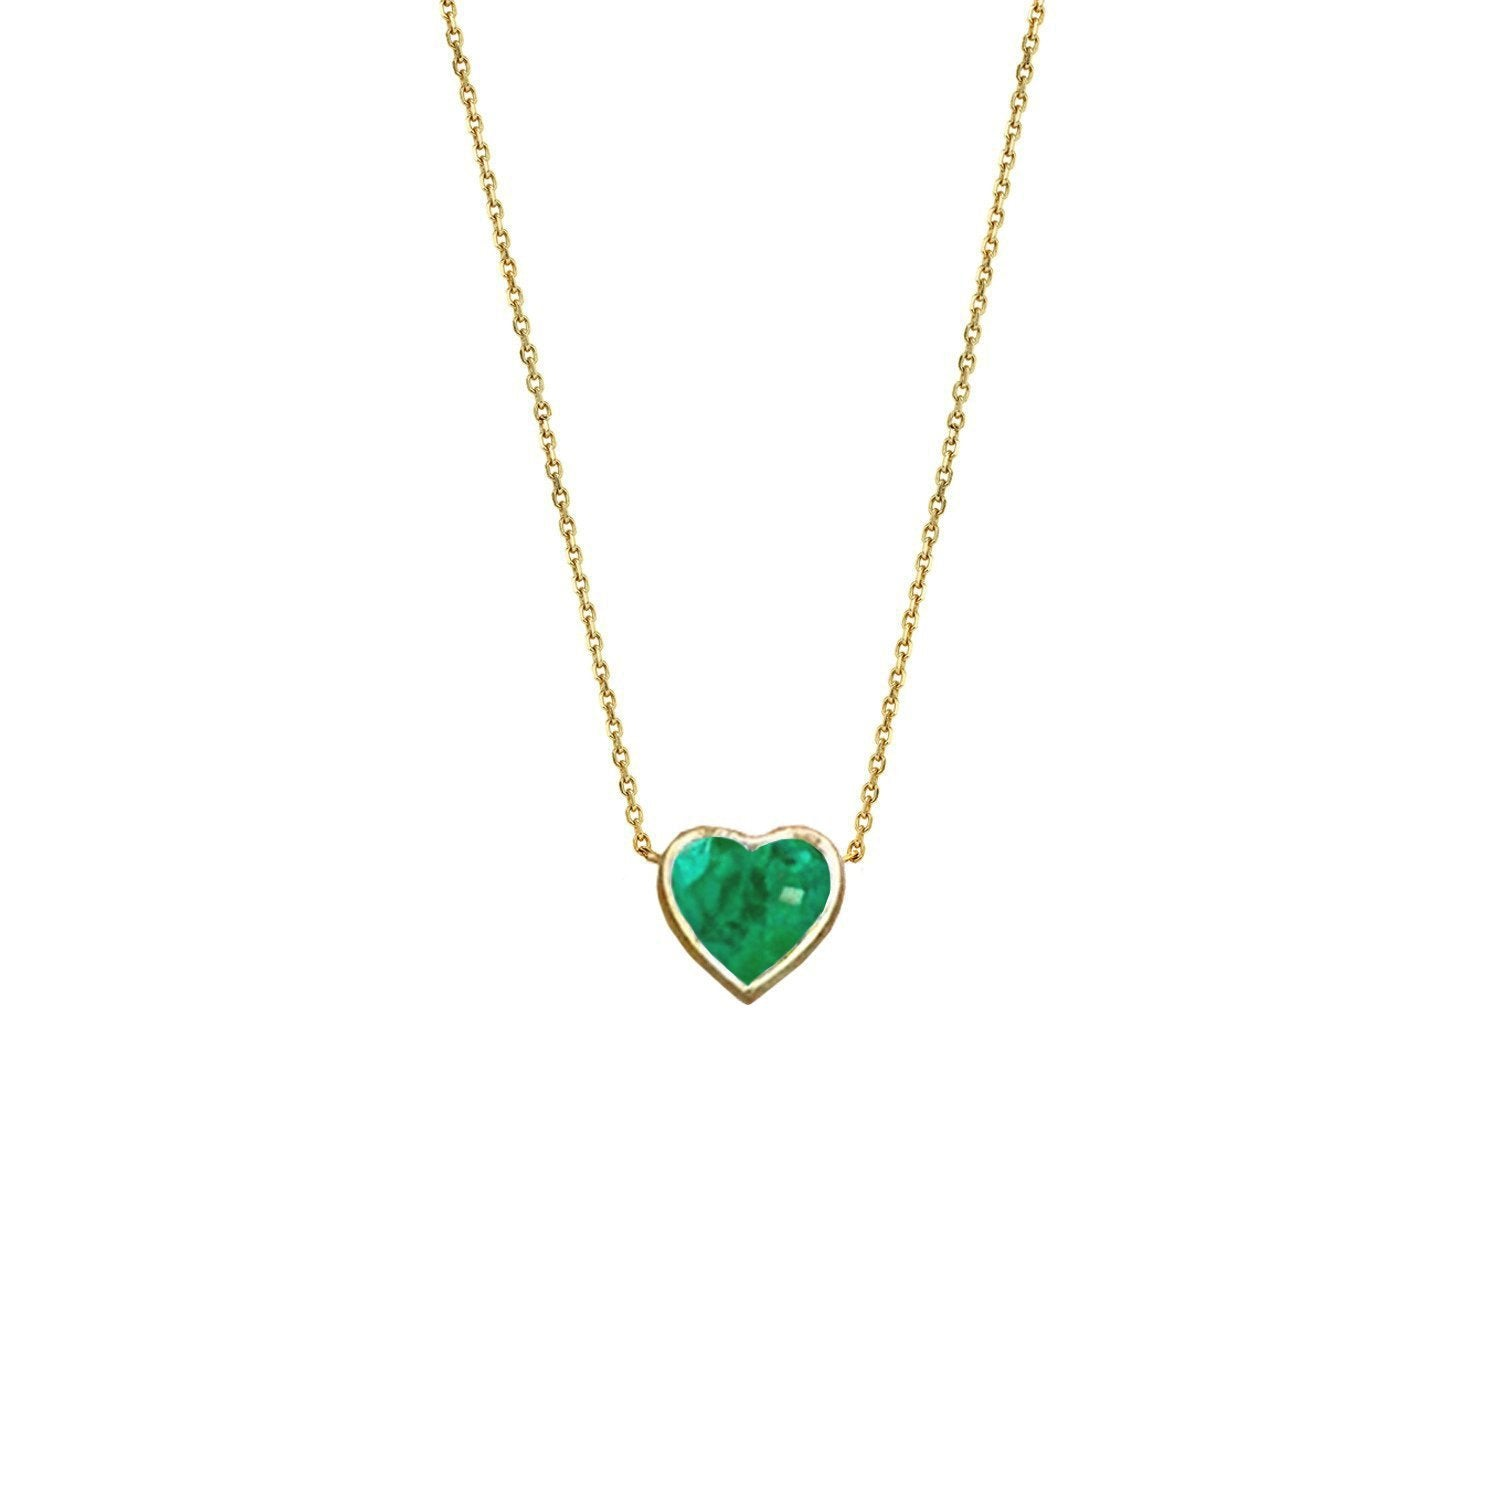 New! Floating Heart Shaped Emerald Necklace